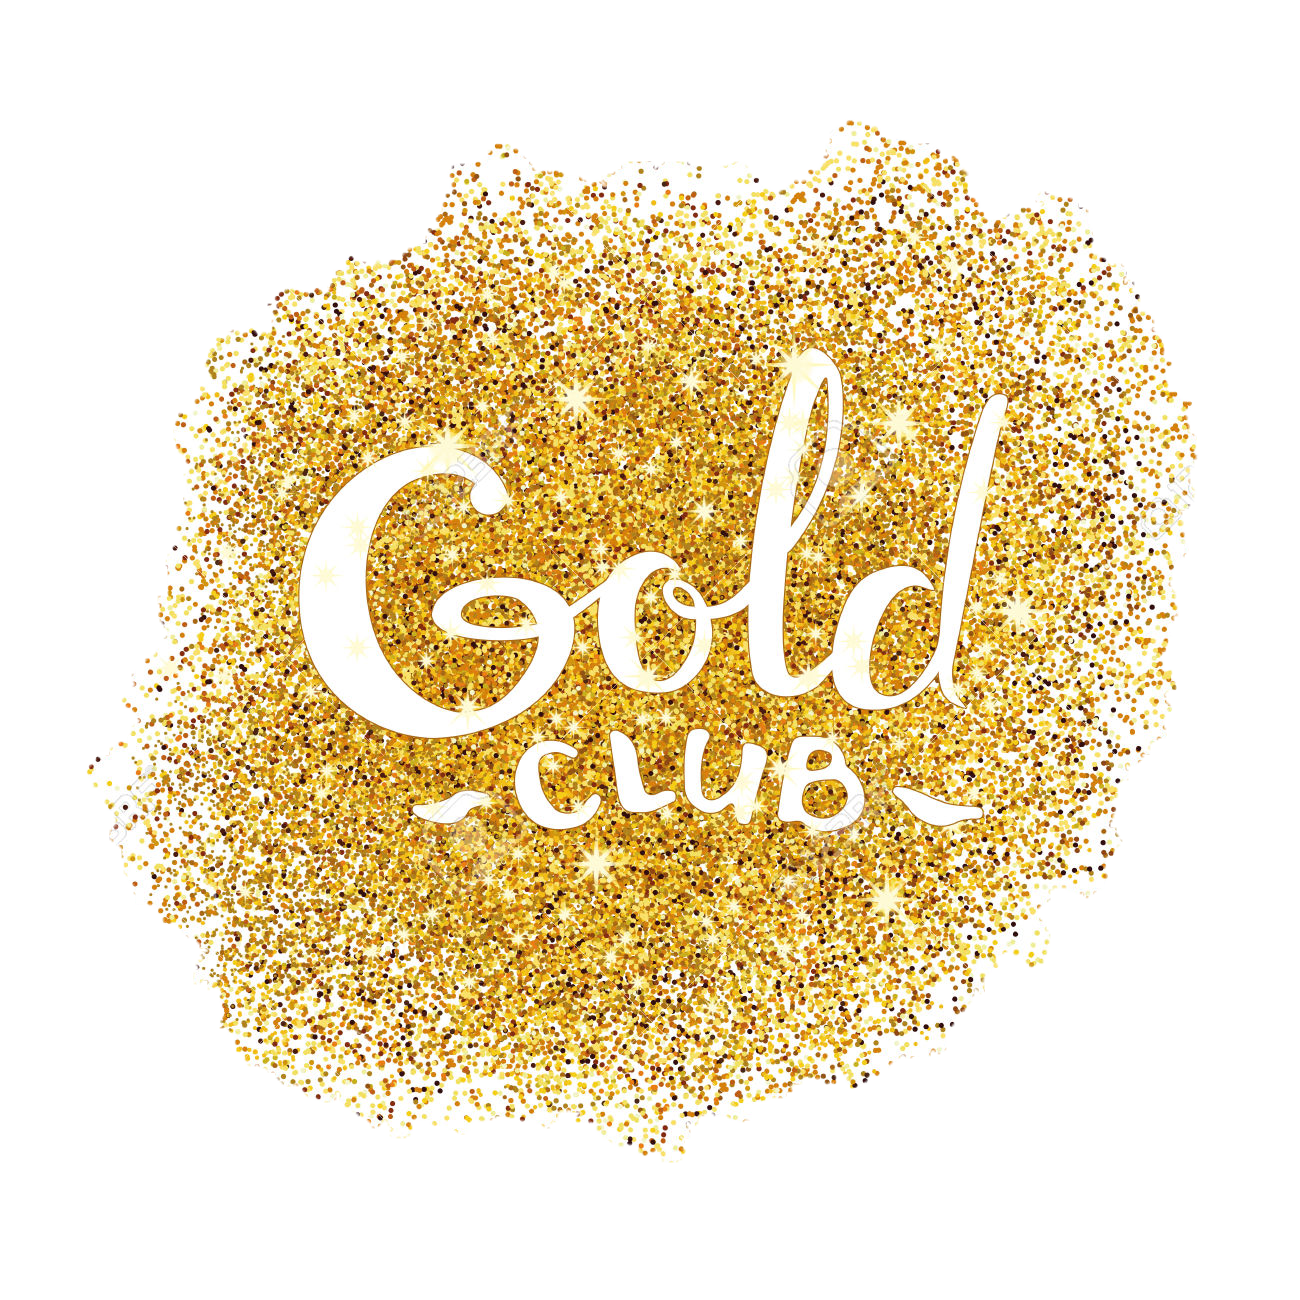 gold glitter png division global affairs #24167